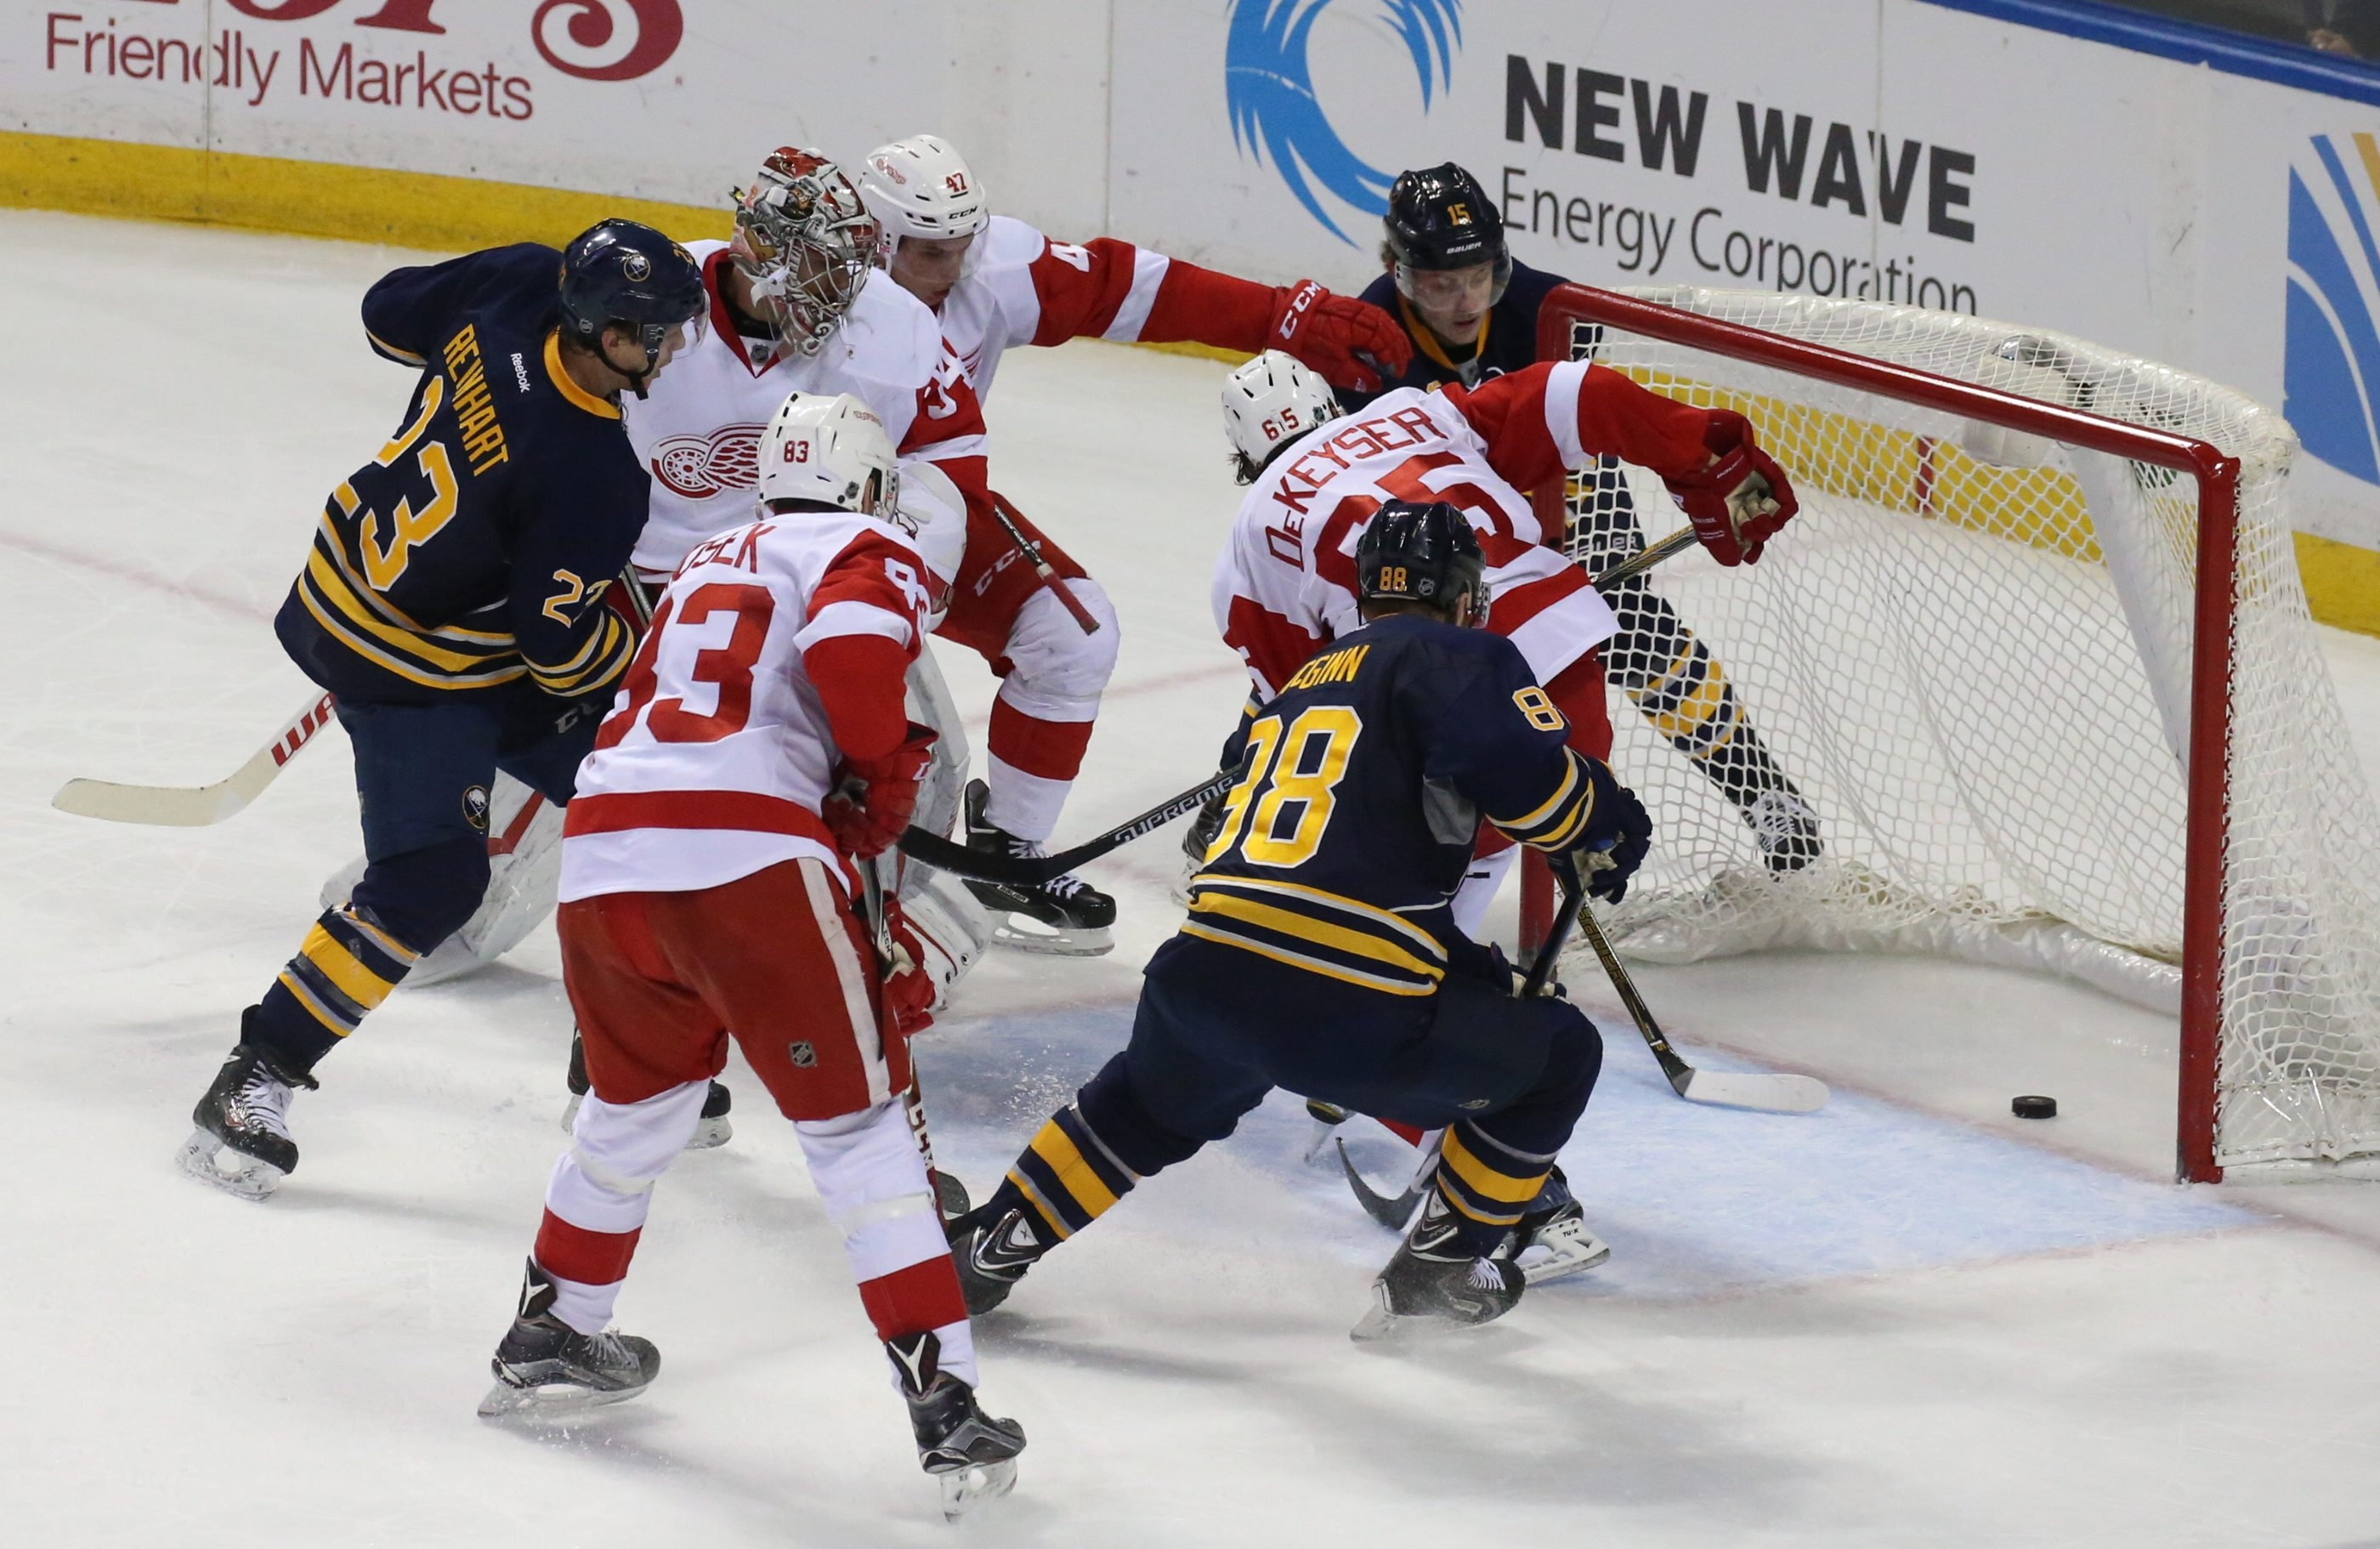 Buffalo's Sam Reinhart scores in a scrum Saturday in front of the Detroit net at First Niagara Center. The Sabres lost to the Red Wings, 4-3.